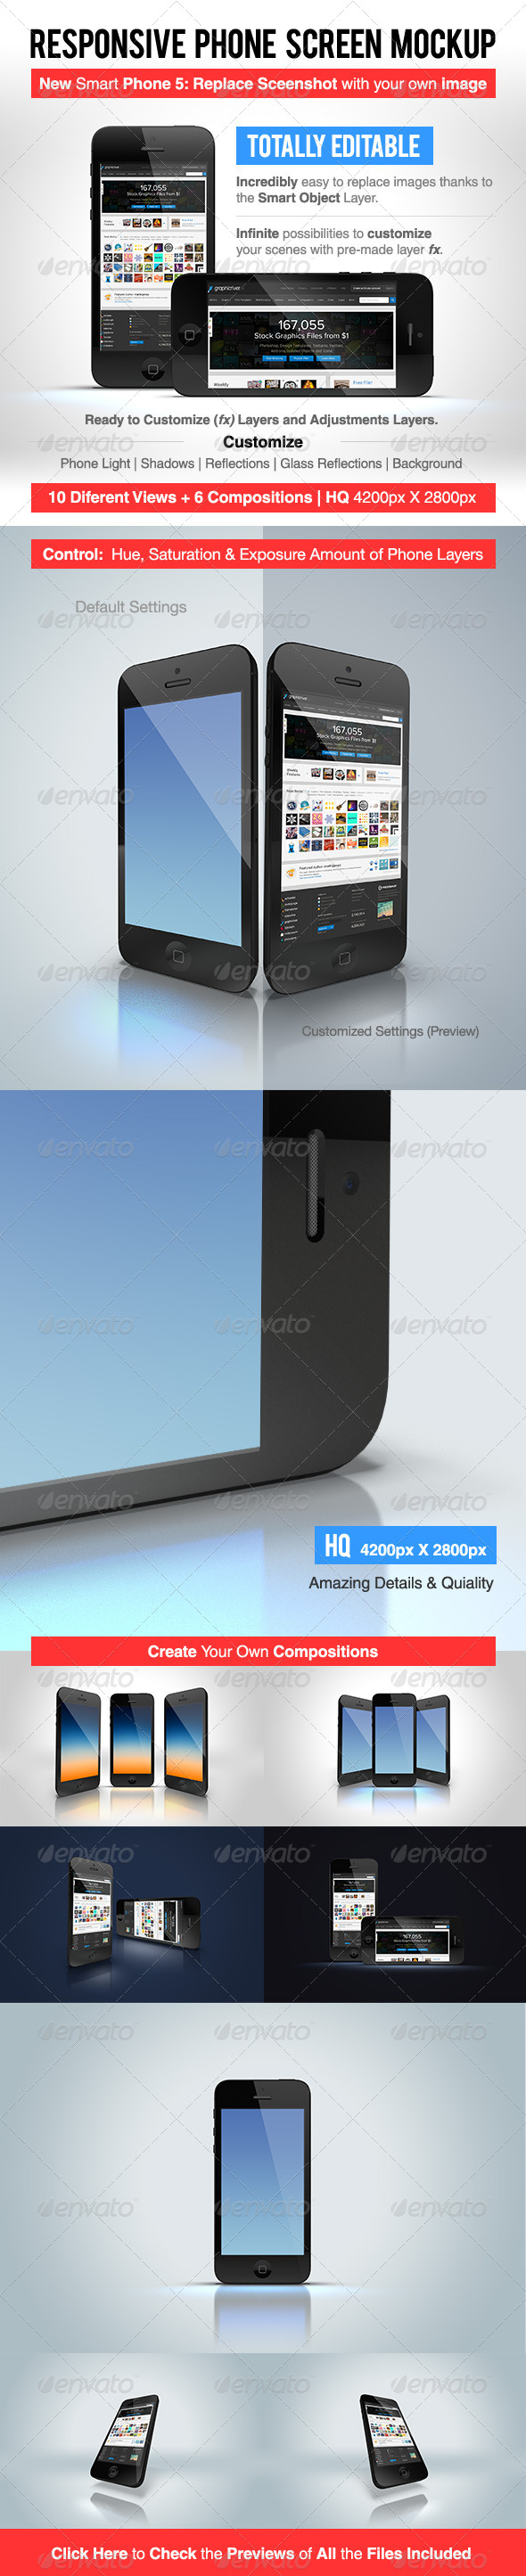 Responsive Phone Screen Mockup - Mobile Displays